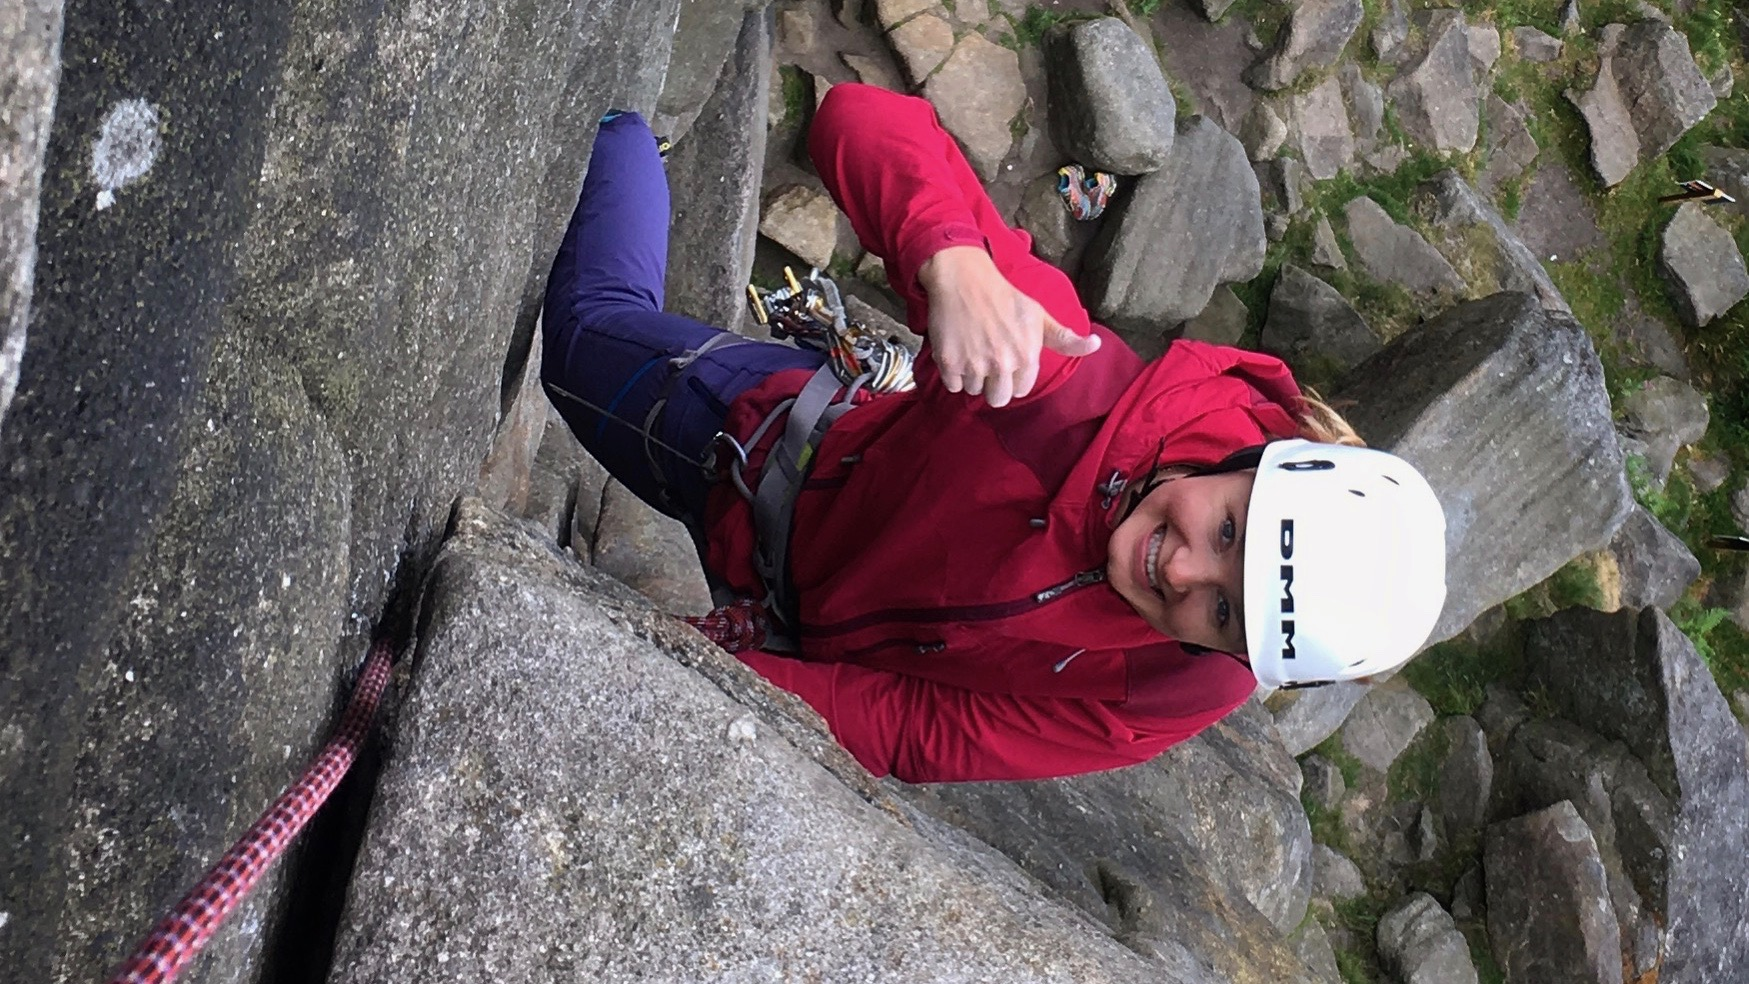 A lady smiles and gives the thumbs up while climbing at Stanage Edge on a rock climbing course